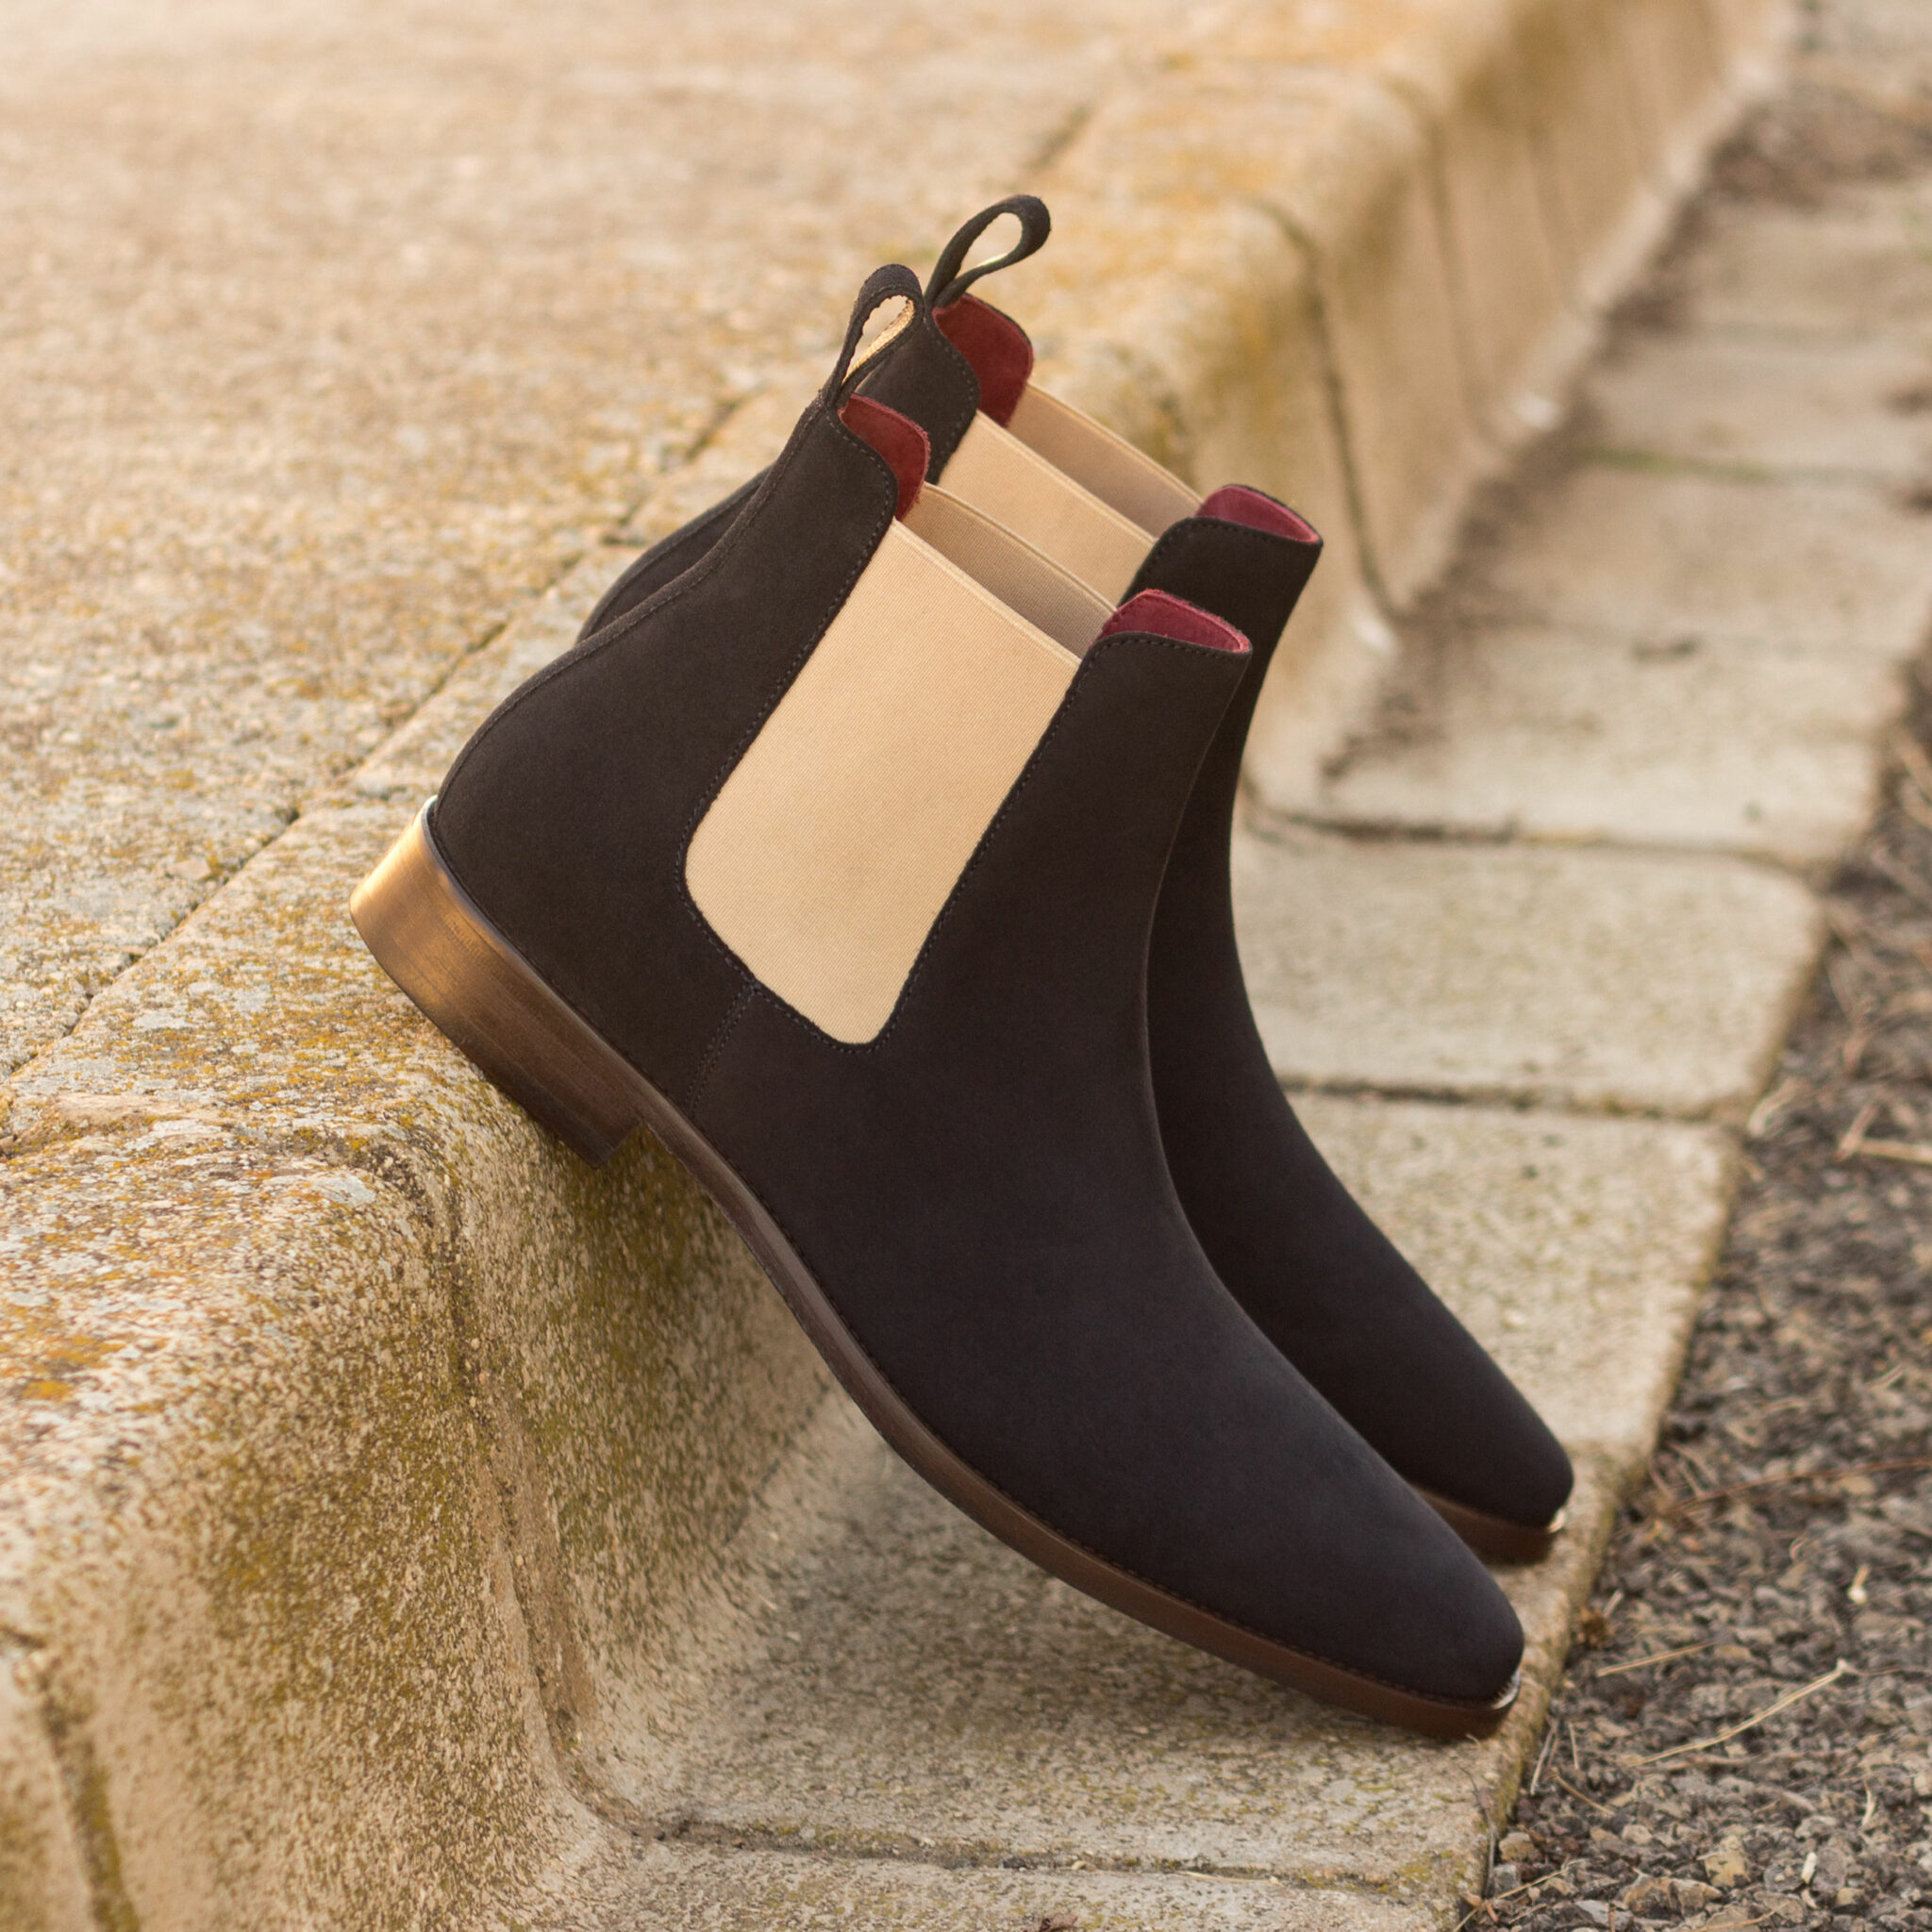 Chelsea boot navy lux suede : 250€